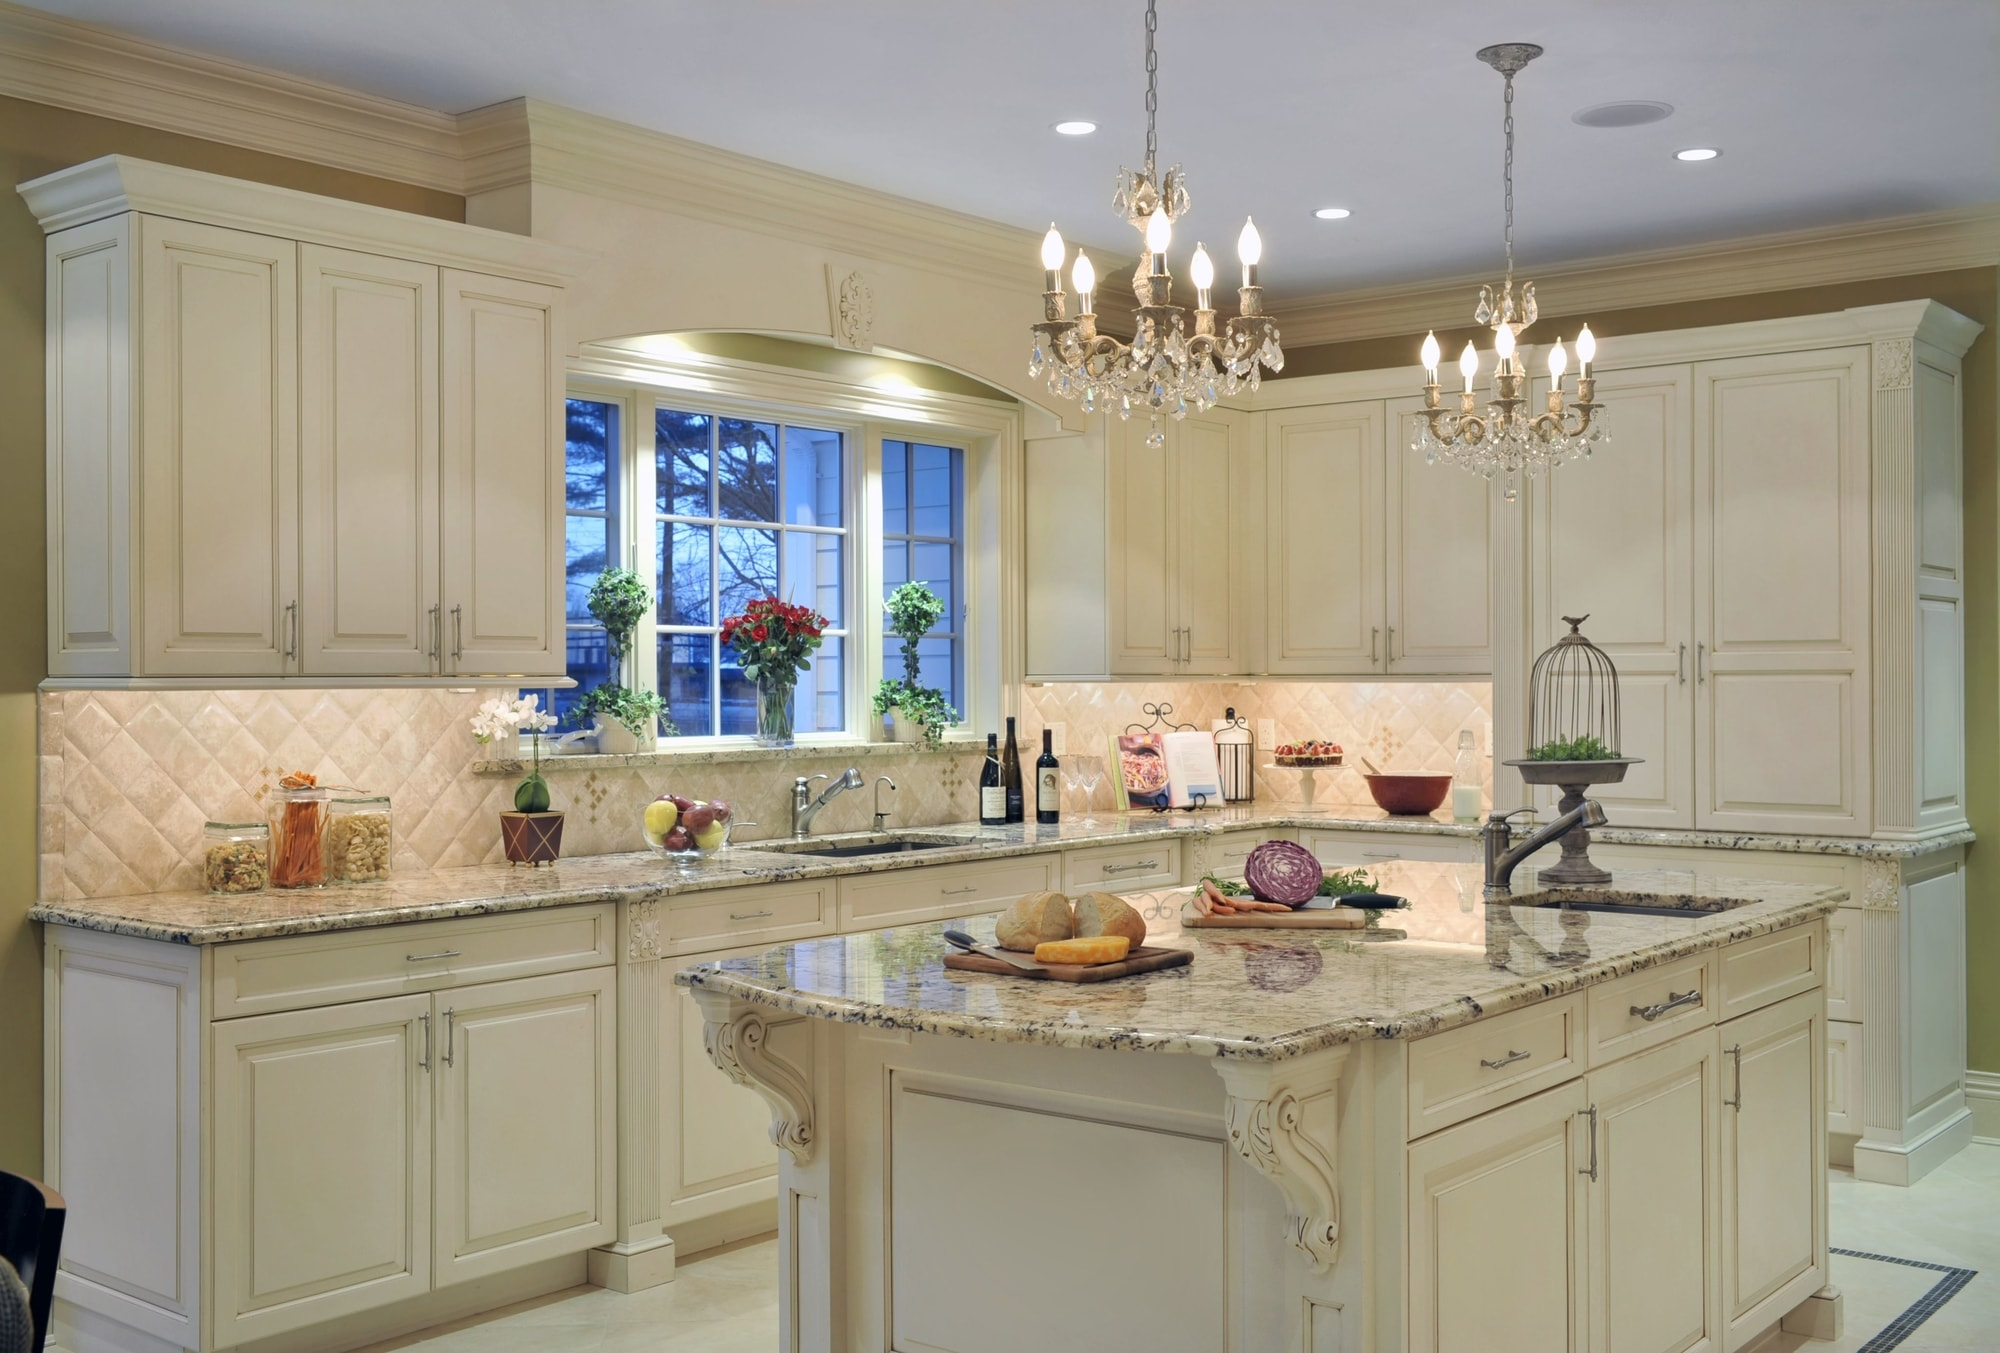 Traditional style kitchen with white upper cabinets